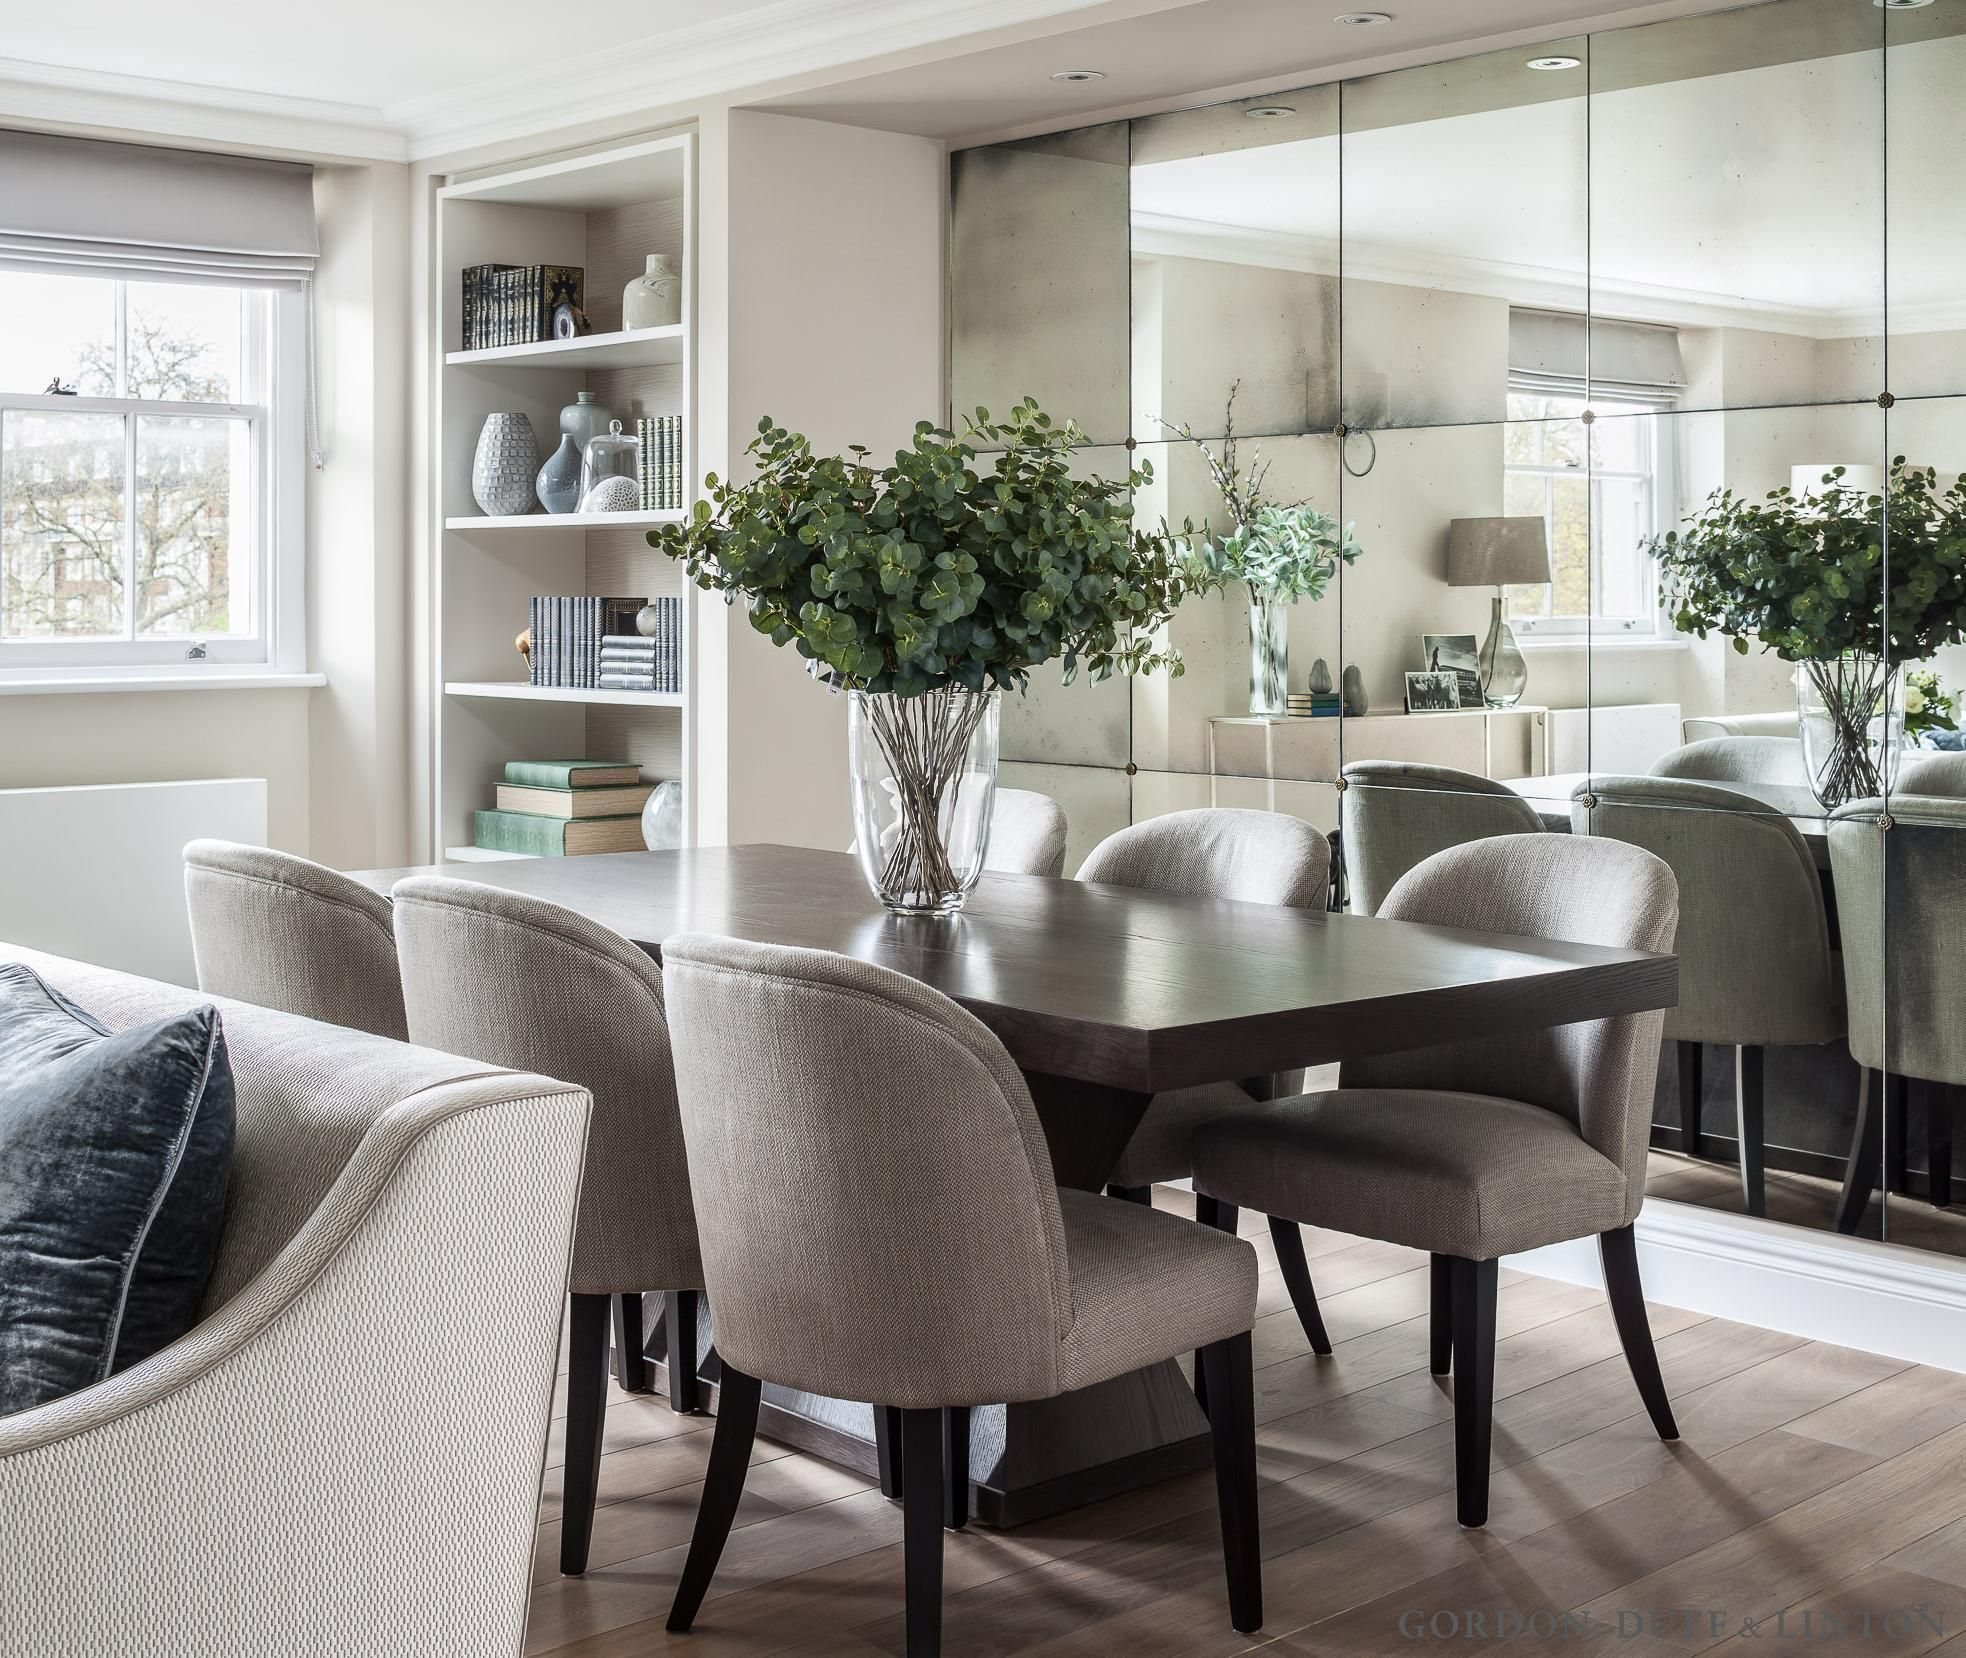 Onslow Square – Gordon Duff & Linton. Living room with bespoke ...